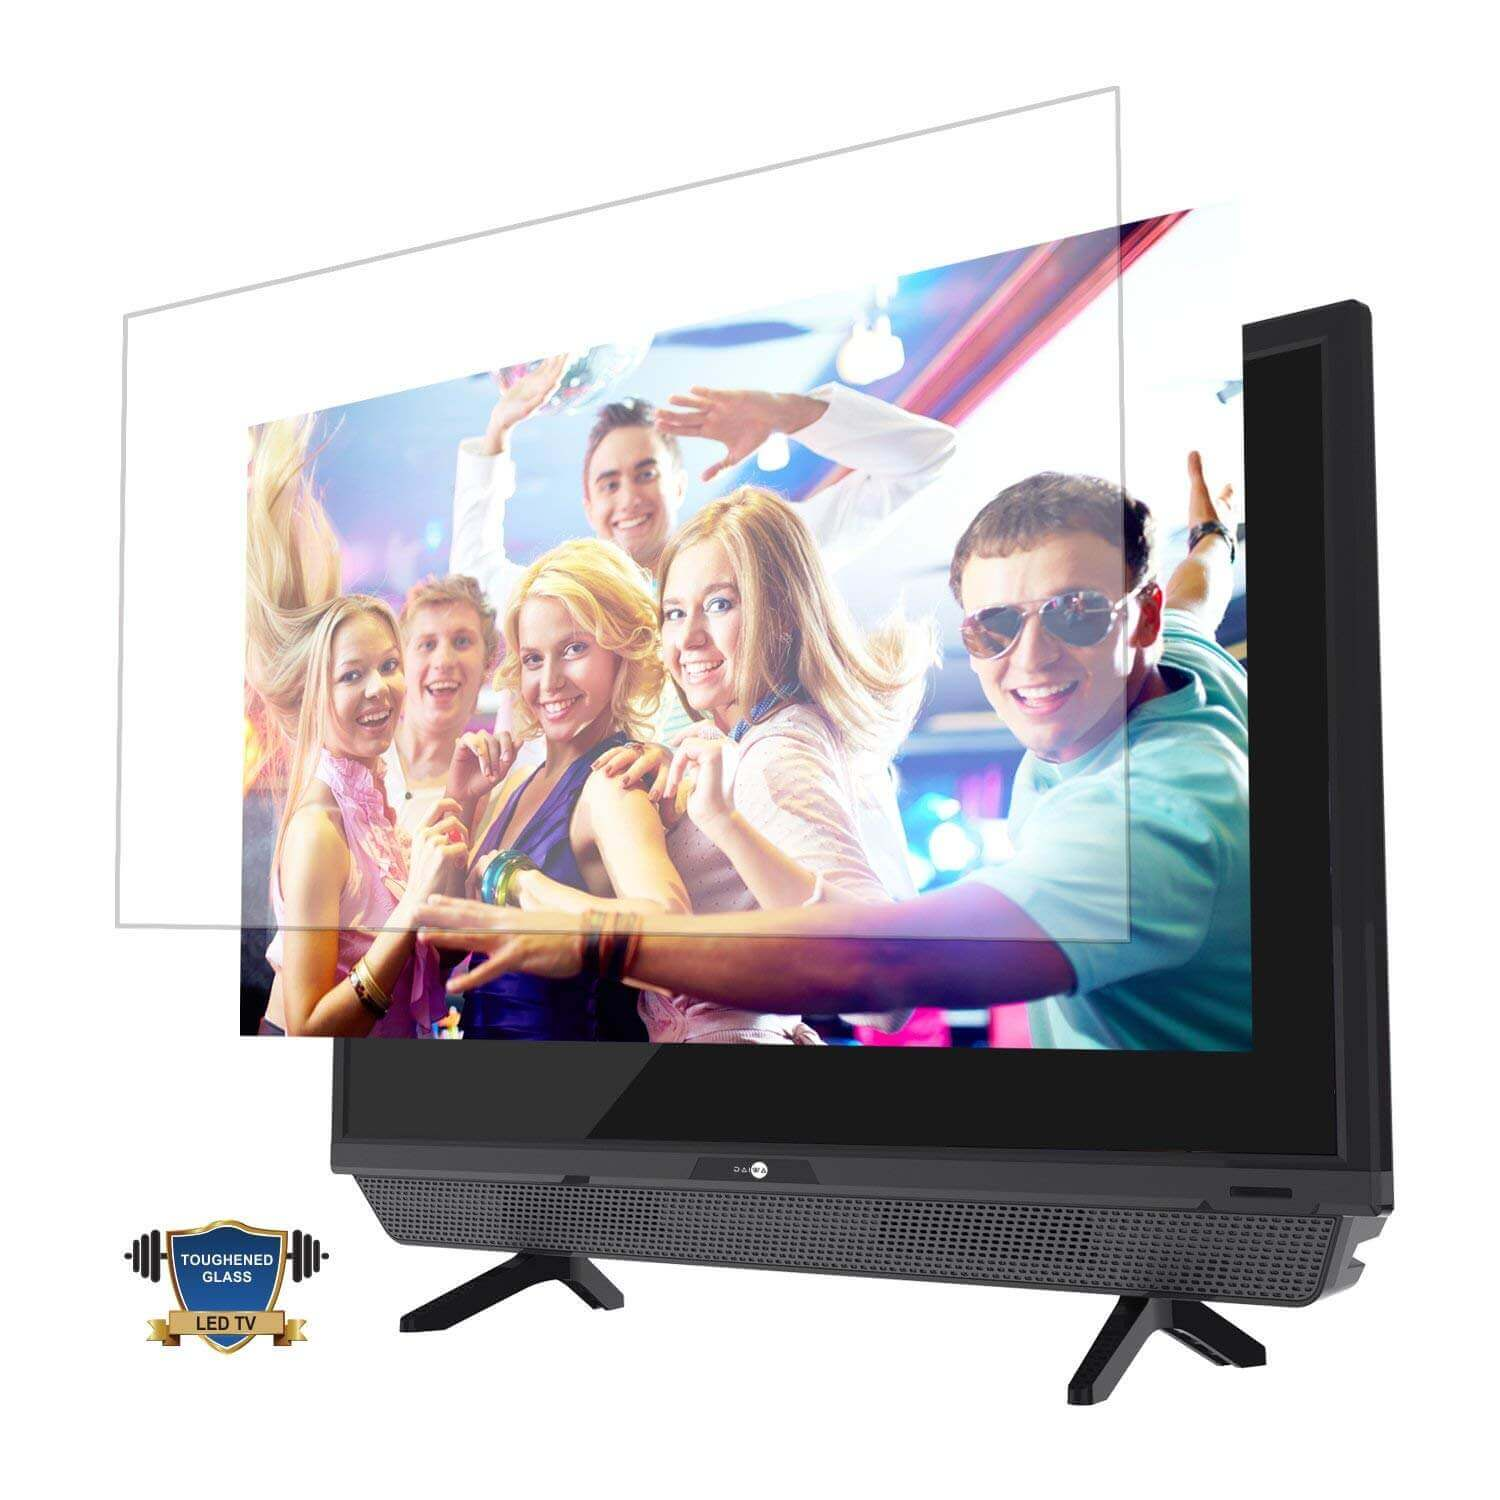 DAIWA D26K11 (24) 60cm Toughened LED TV